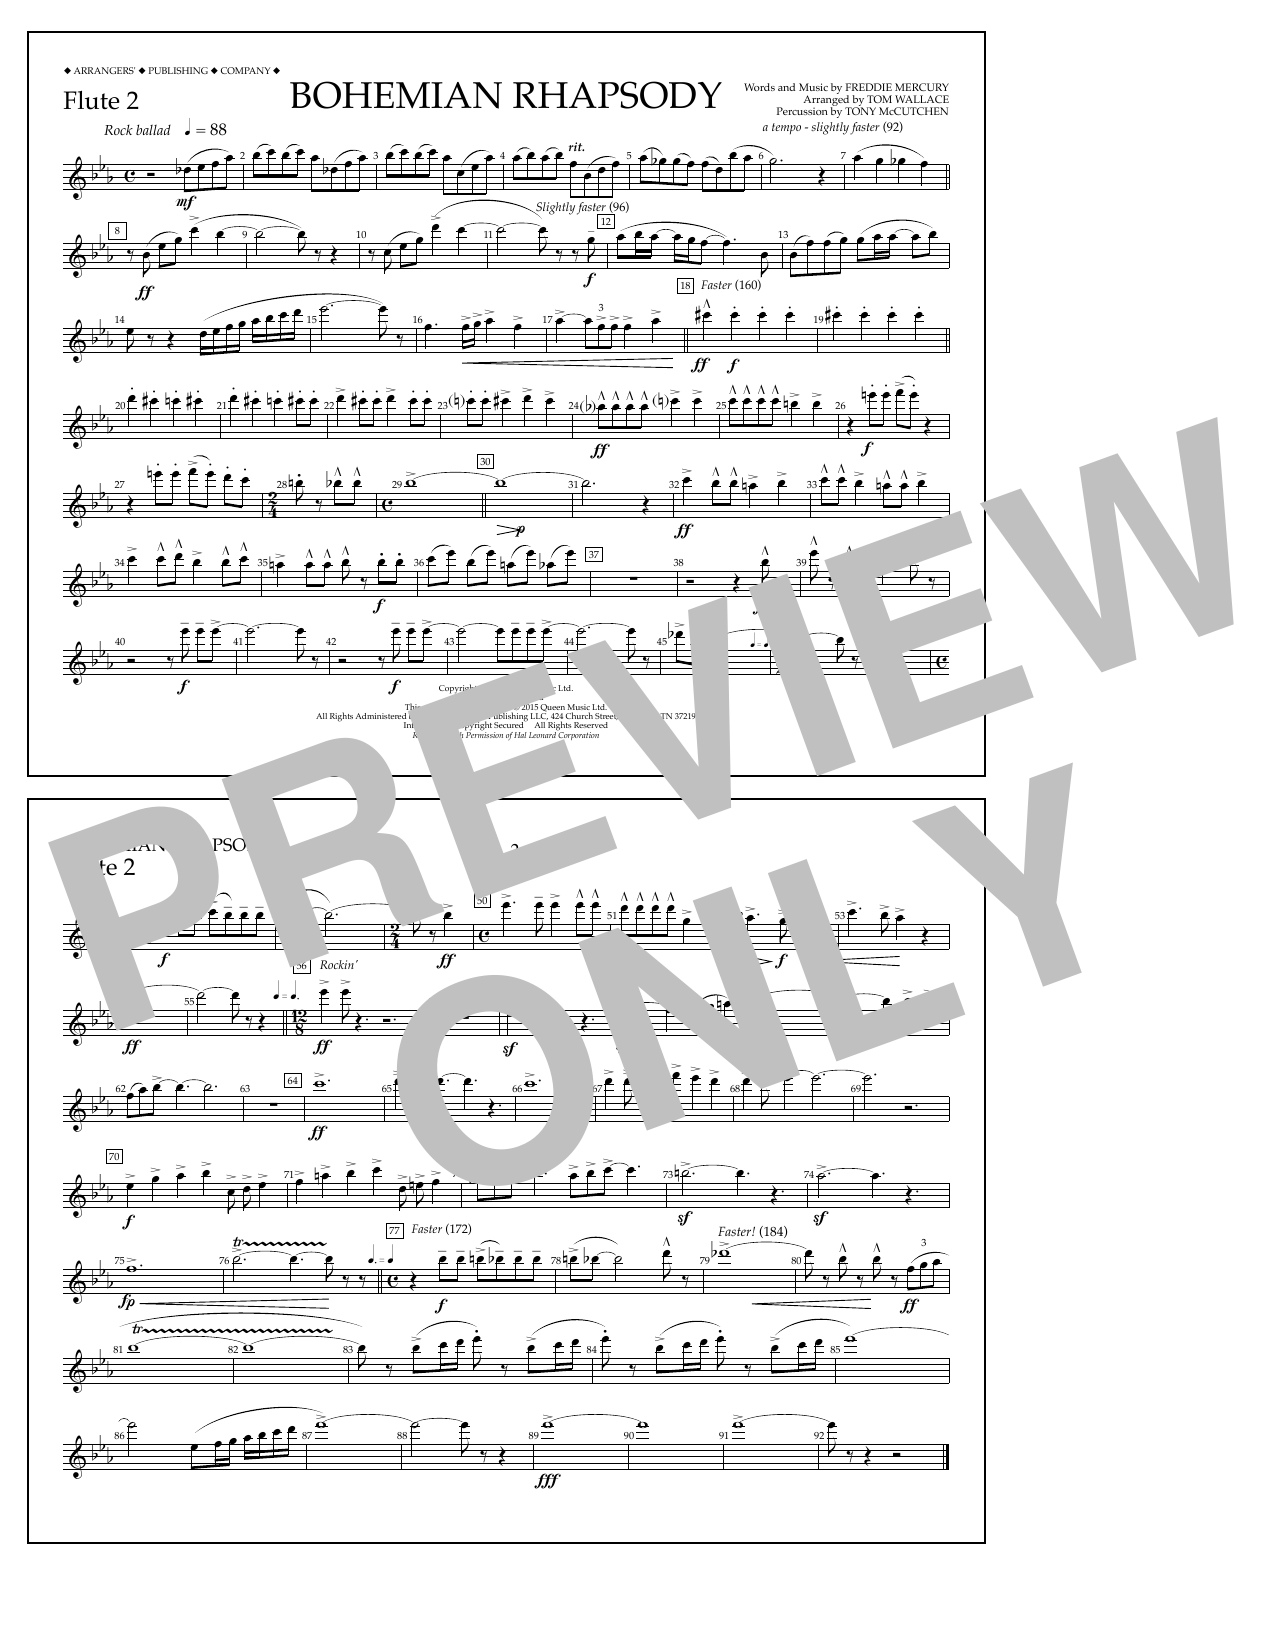 Tom Wallace Bohemian Rhapsody - Flute 2 sheet music notes and chords. Download Printable PDF.